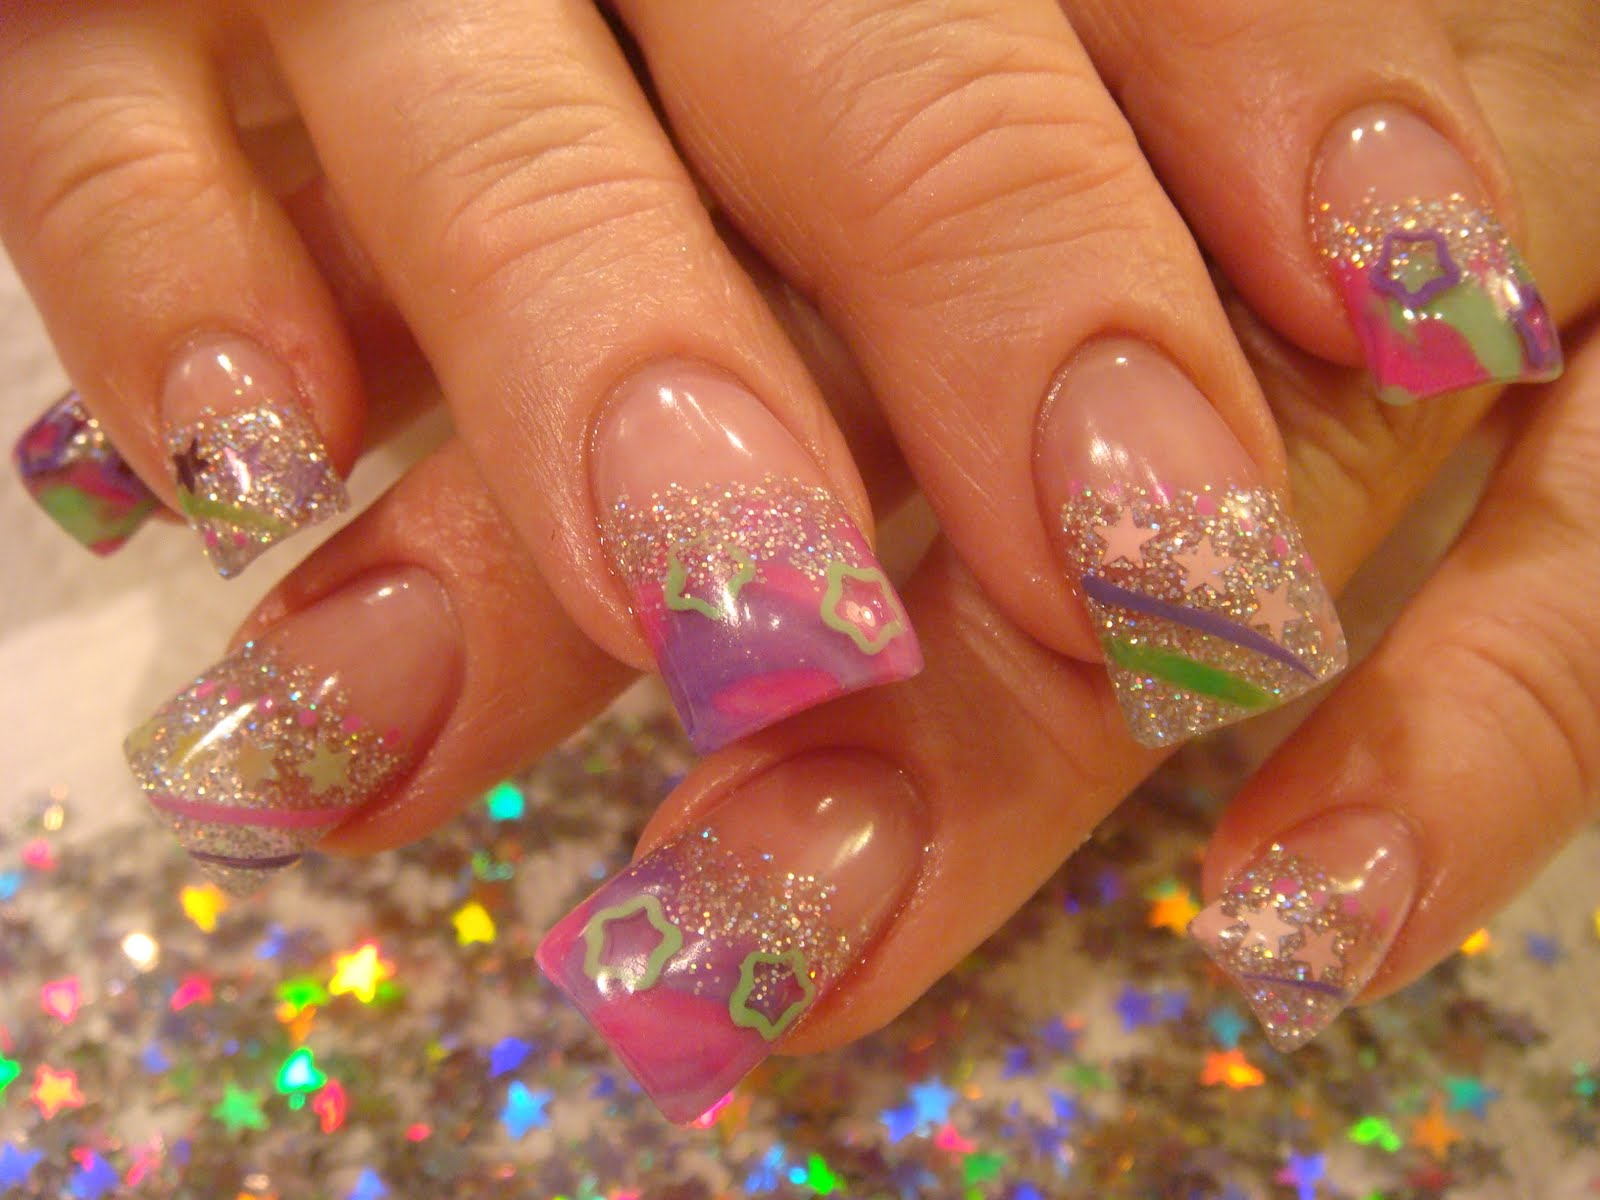 End Nails Acrylic Summer